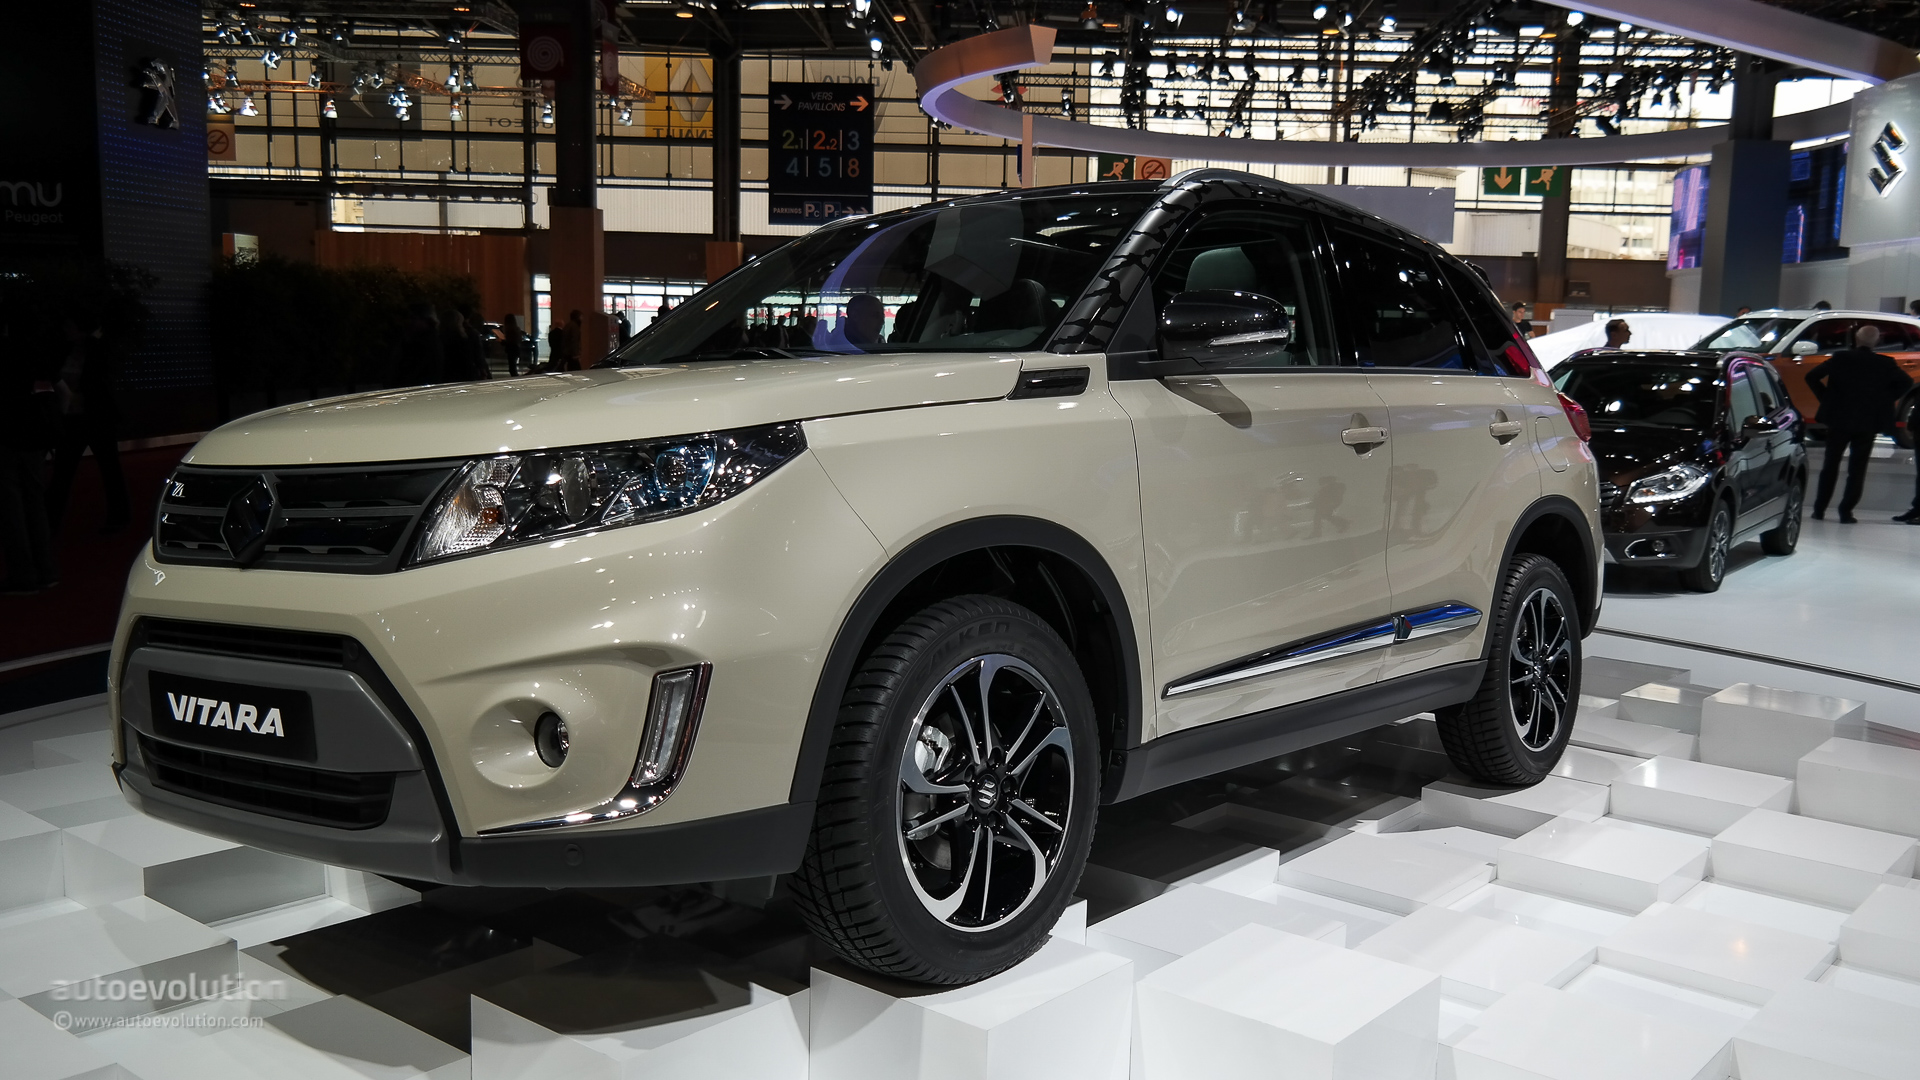 new suzuki vitara unveiled at paris auto show   pakwheels blog